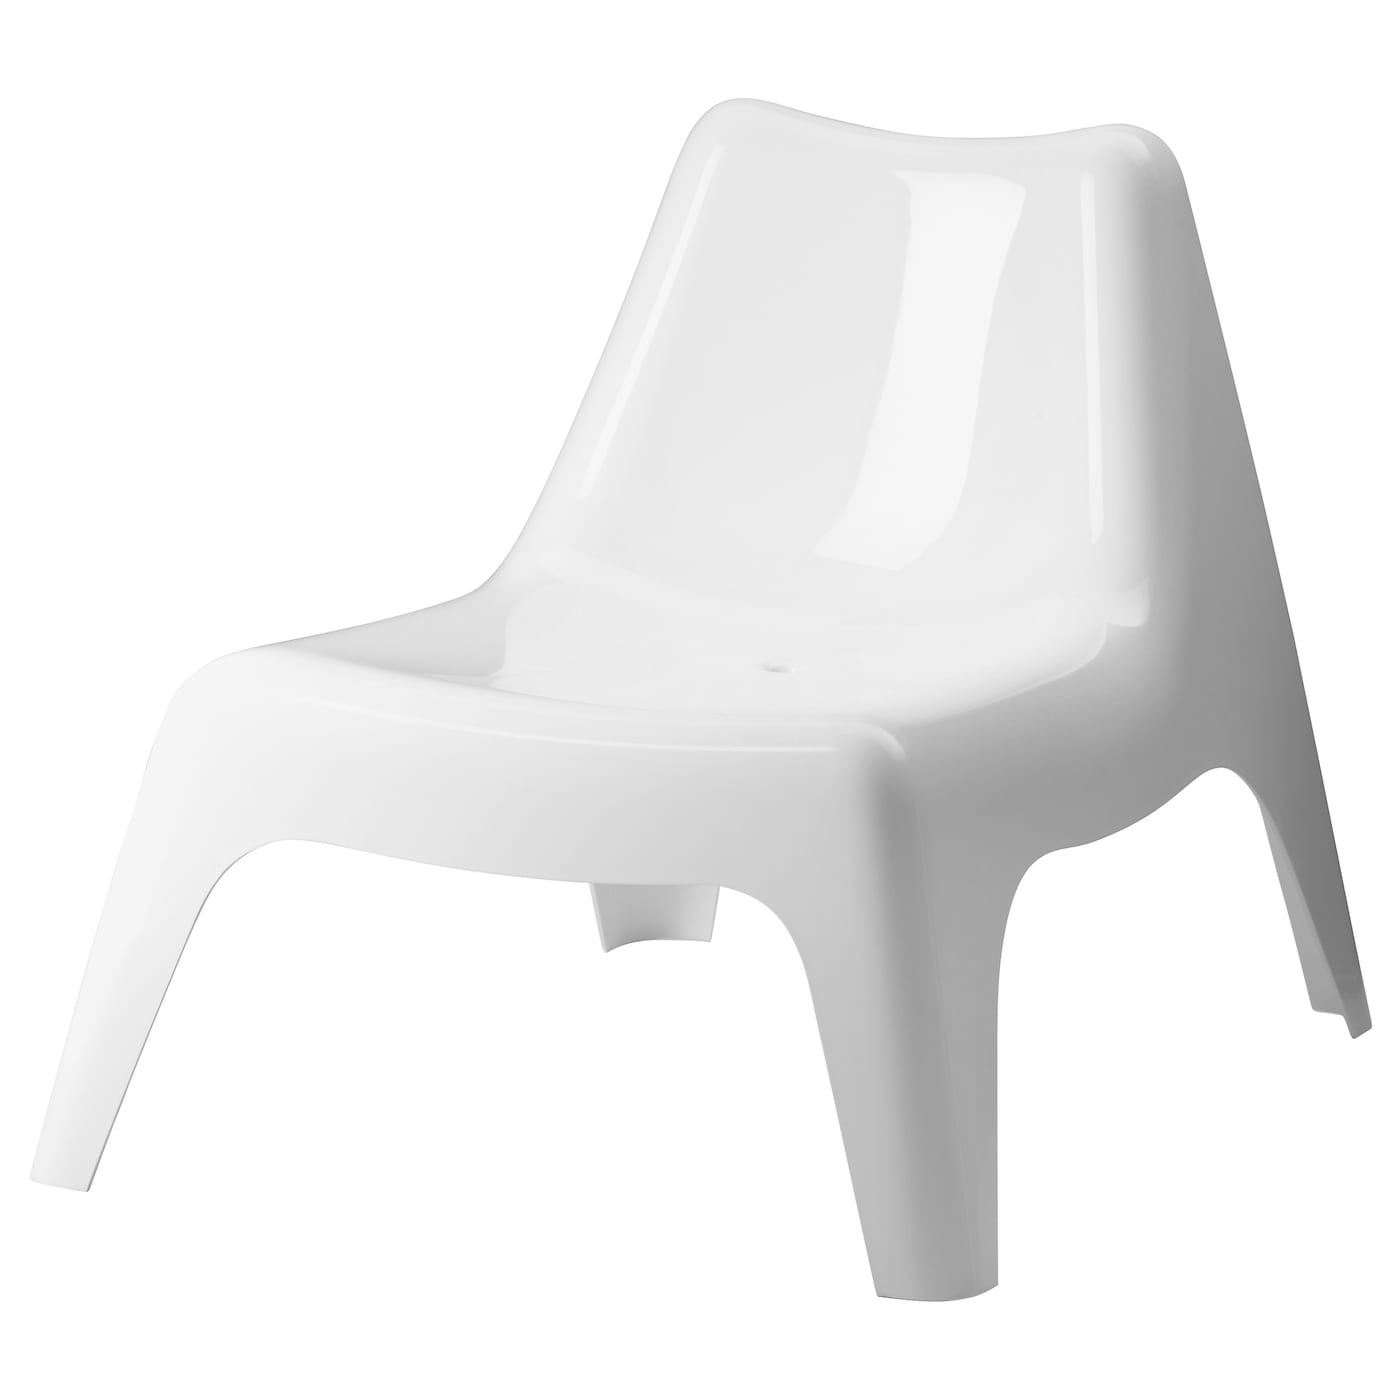 Ikea ps v g easy chair outdoor white ikea - Ikea chaises de jardin ...